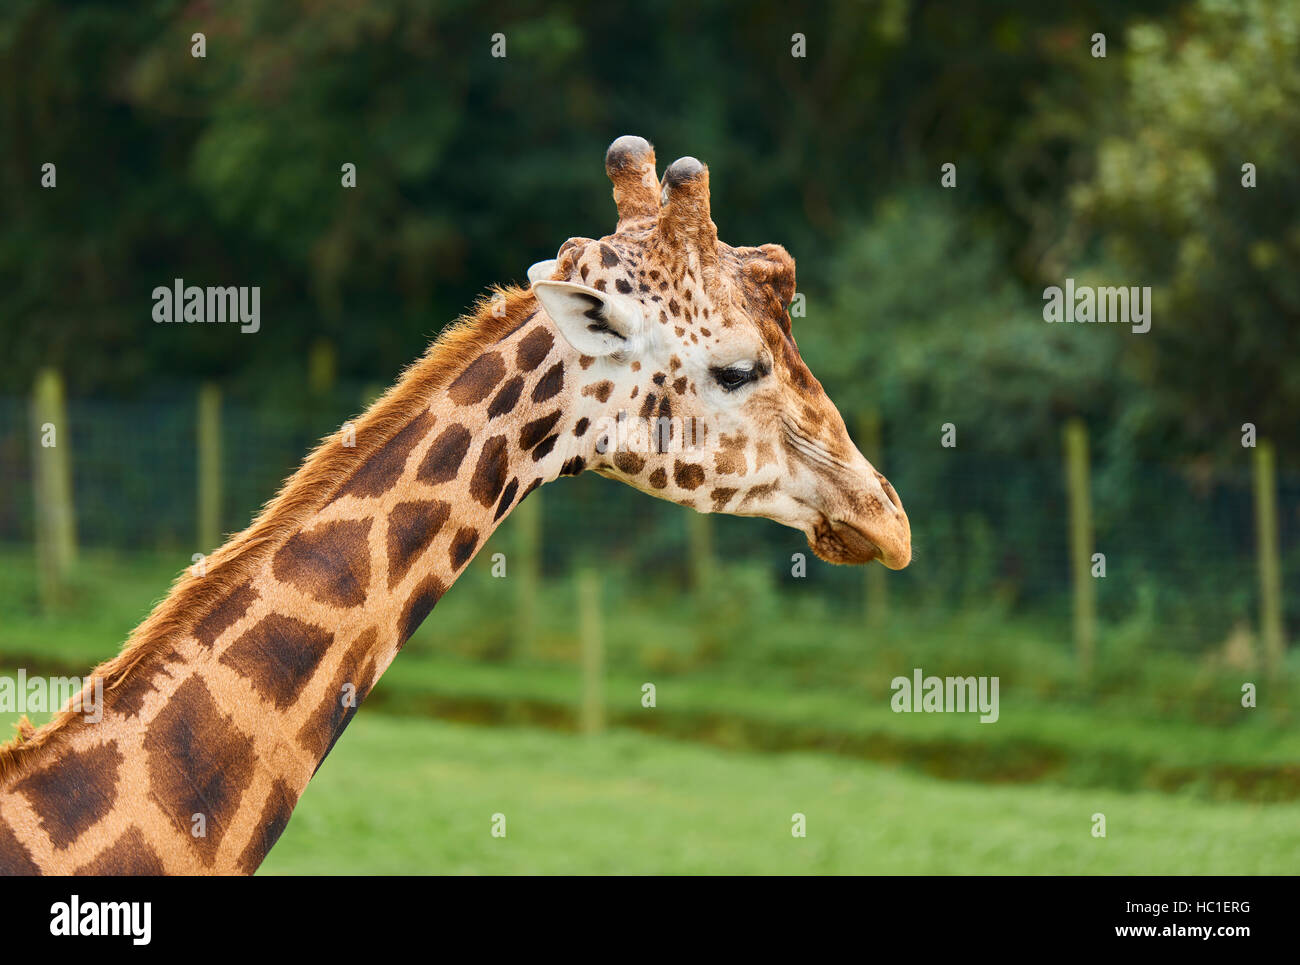 Giraffe neck and head looking right - Stock Image